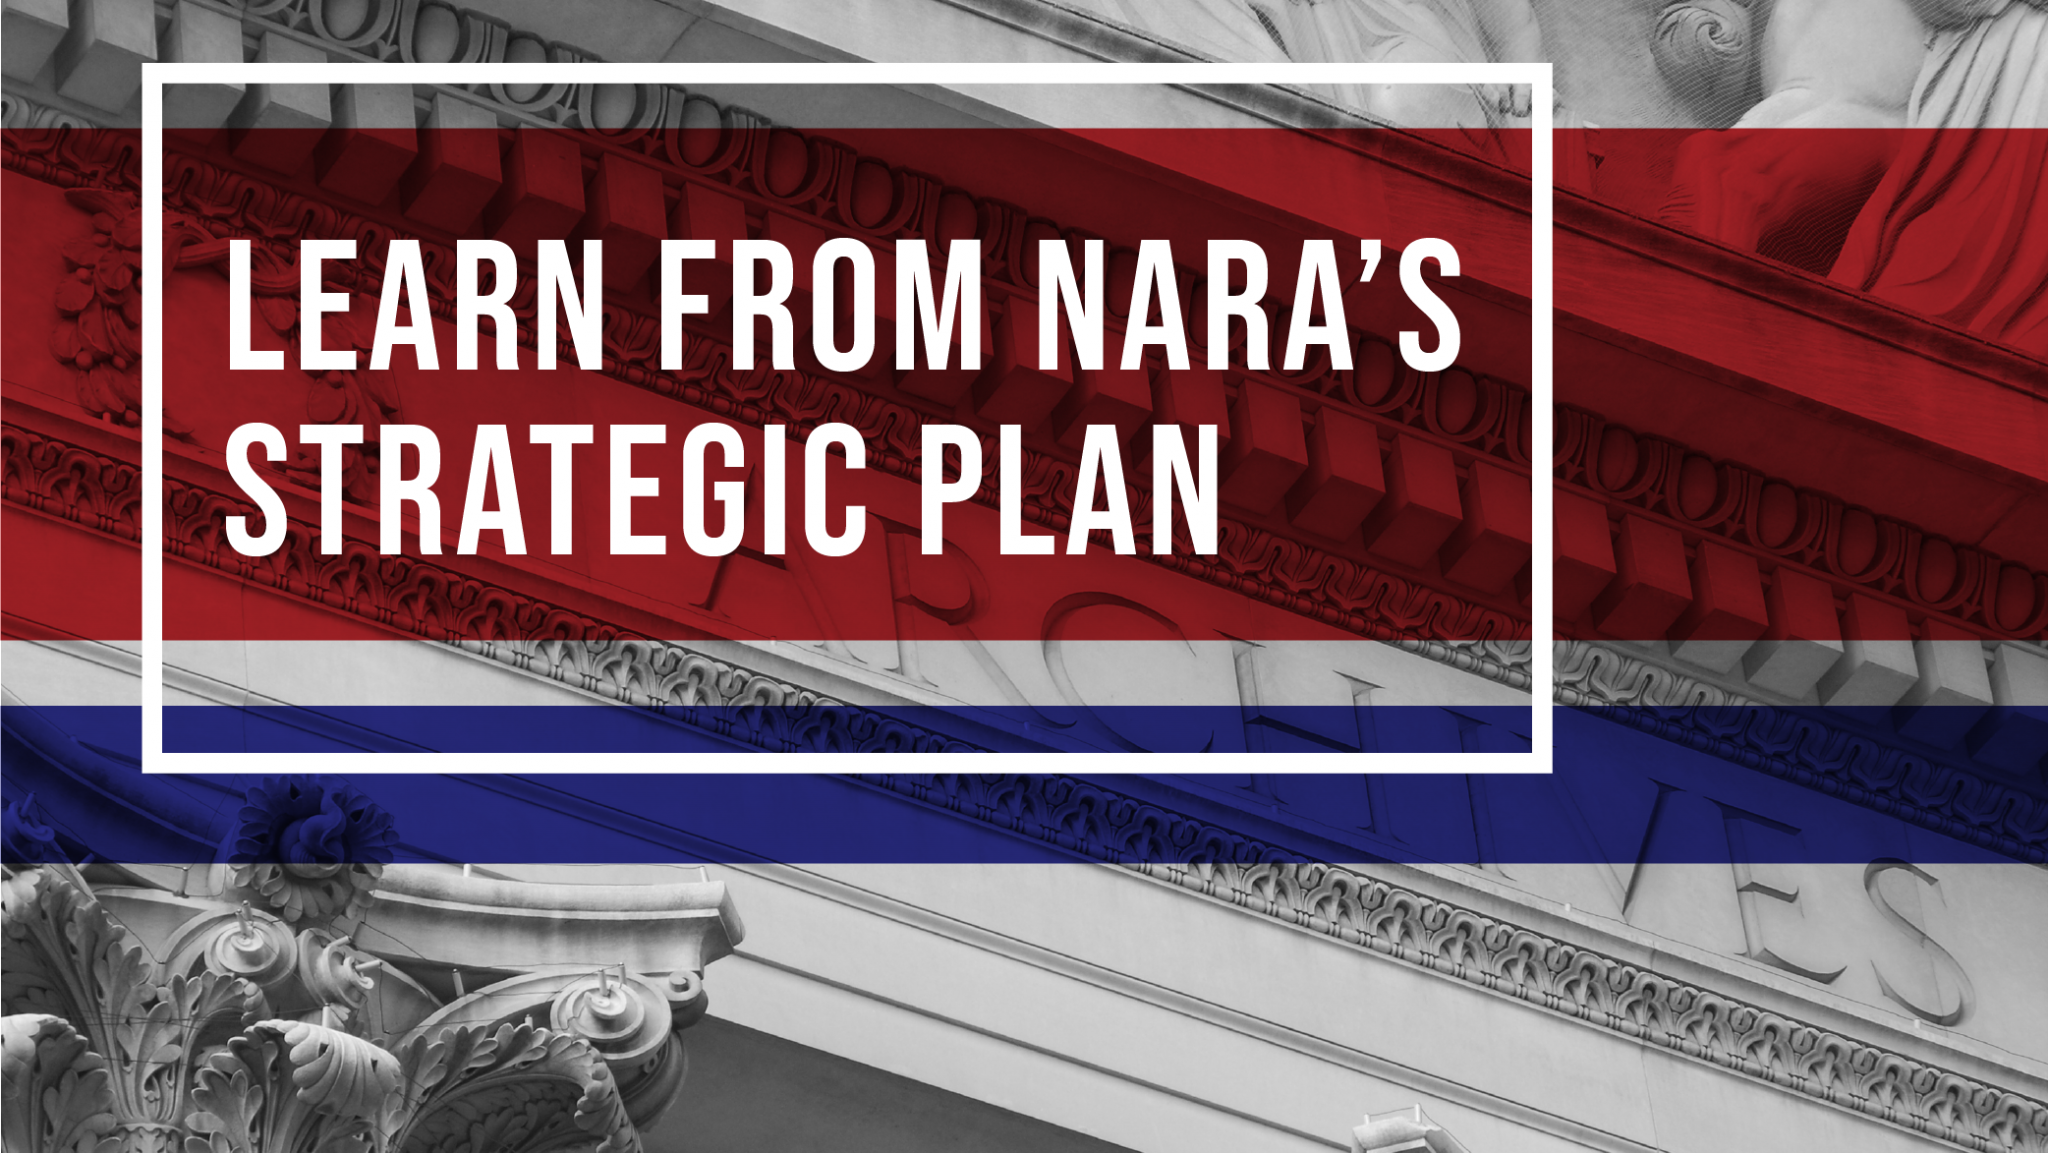 Learn from NARA's Strategic Plan